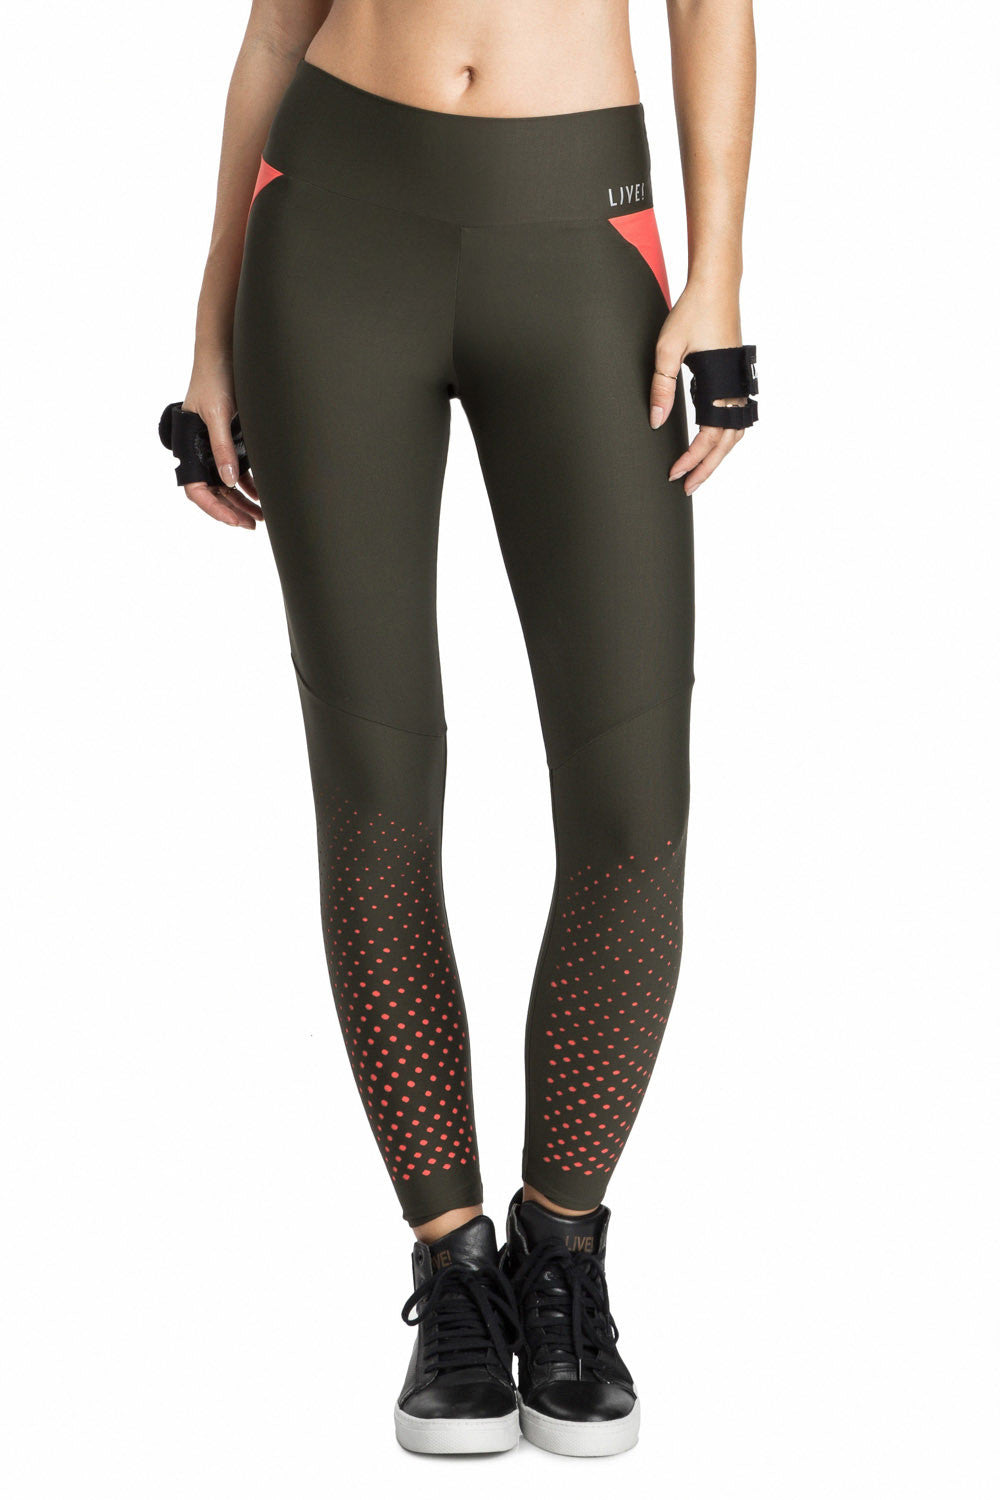 Cut Gym Bio Legging